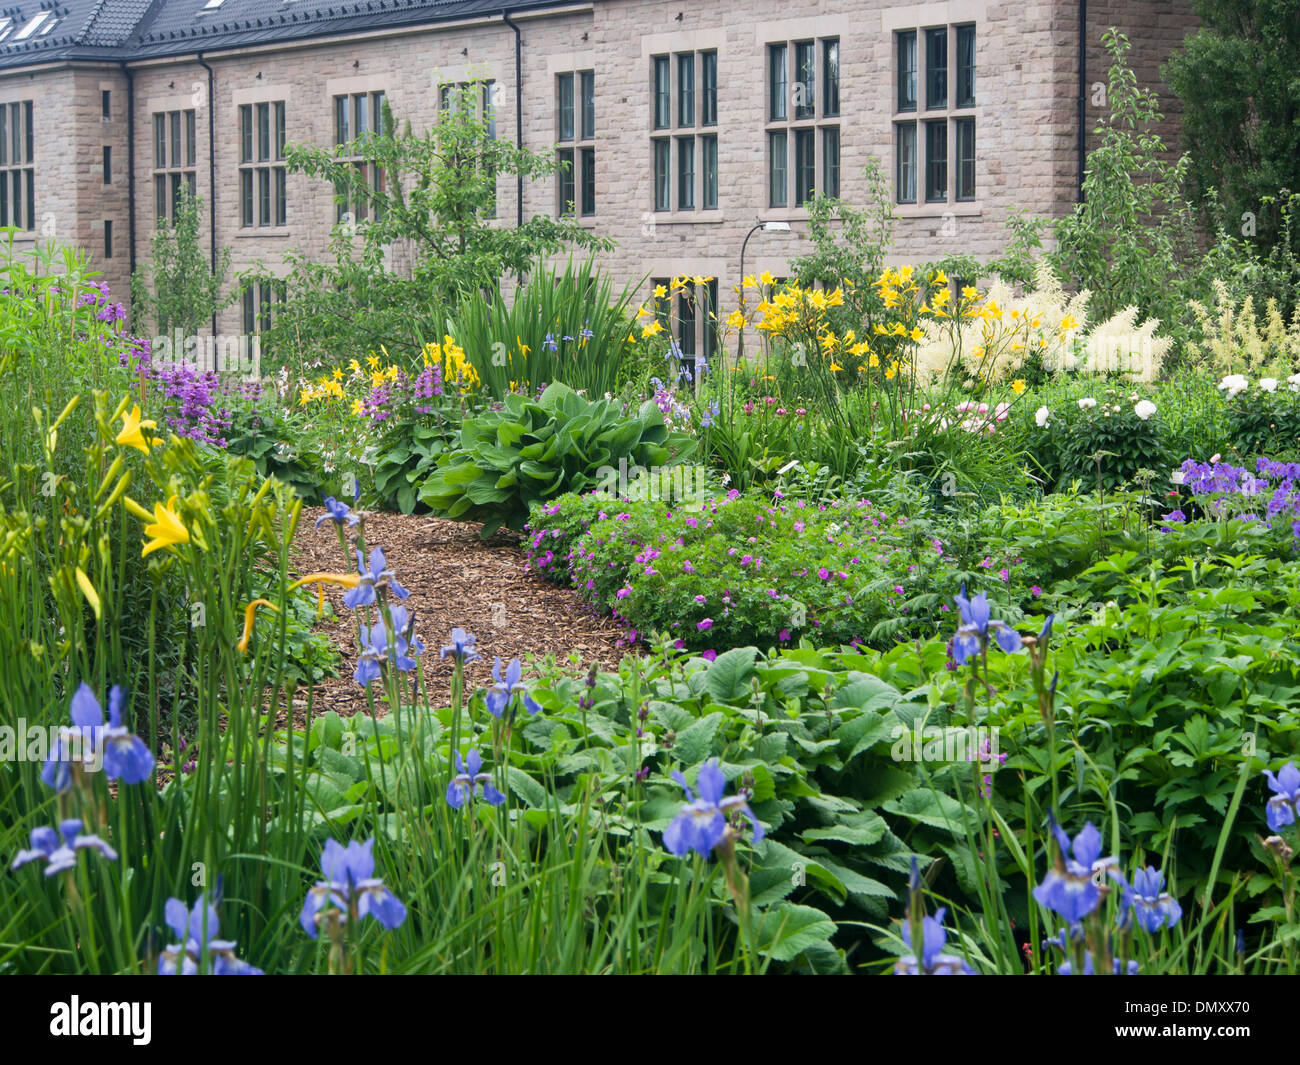 Botanical Garden In Oslo Has Set Up Great Grandmothers Garden, Displaying  Flowers Traditionally Cultivated In Norwegian Gardens